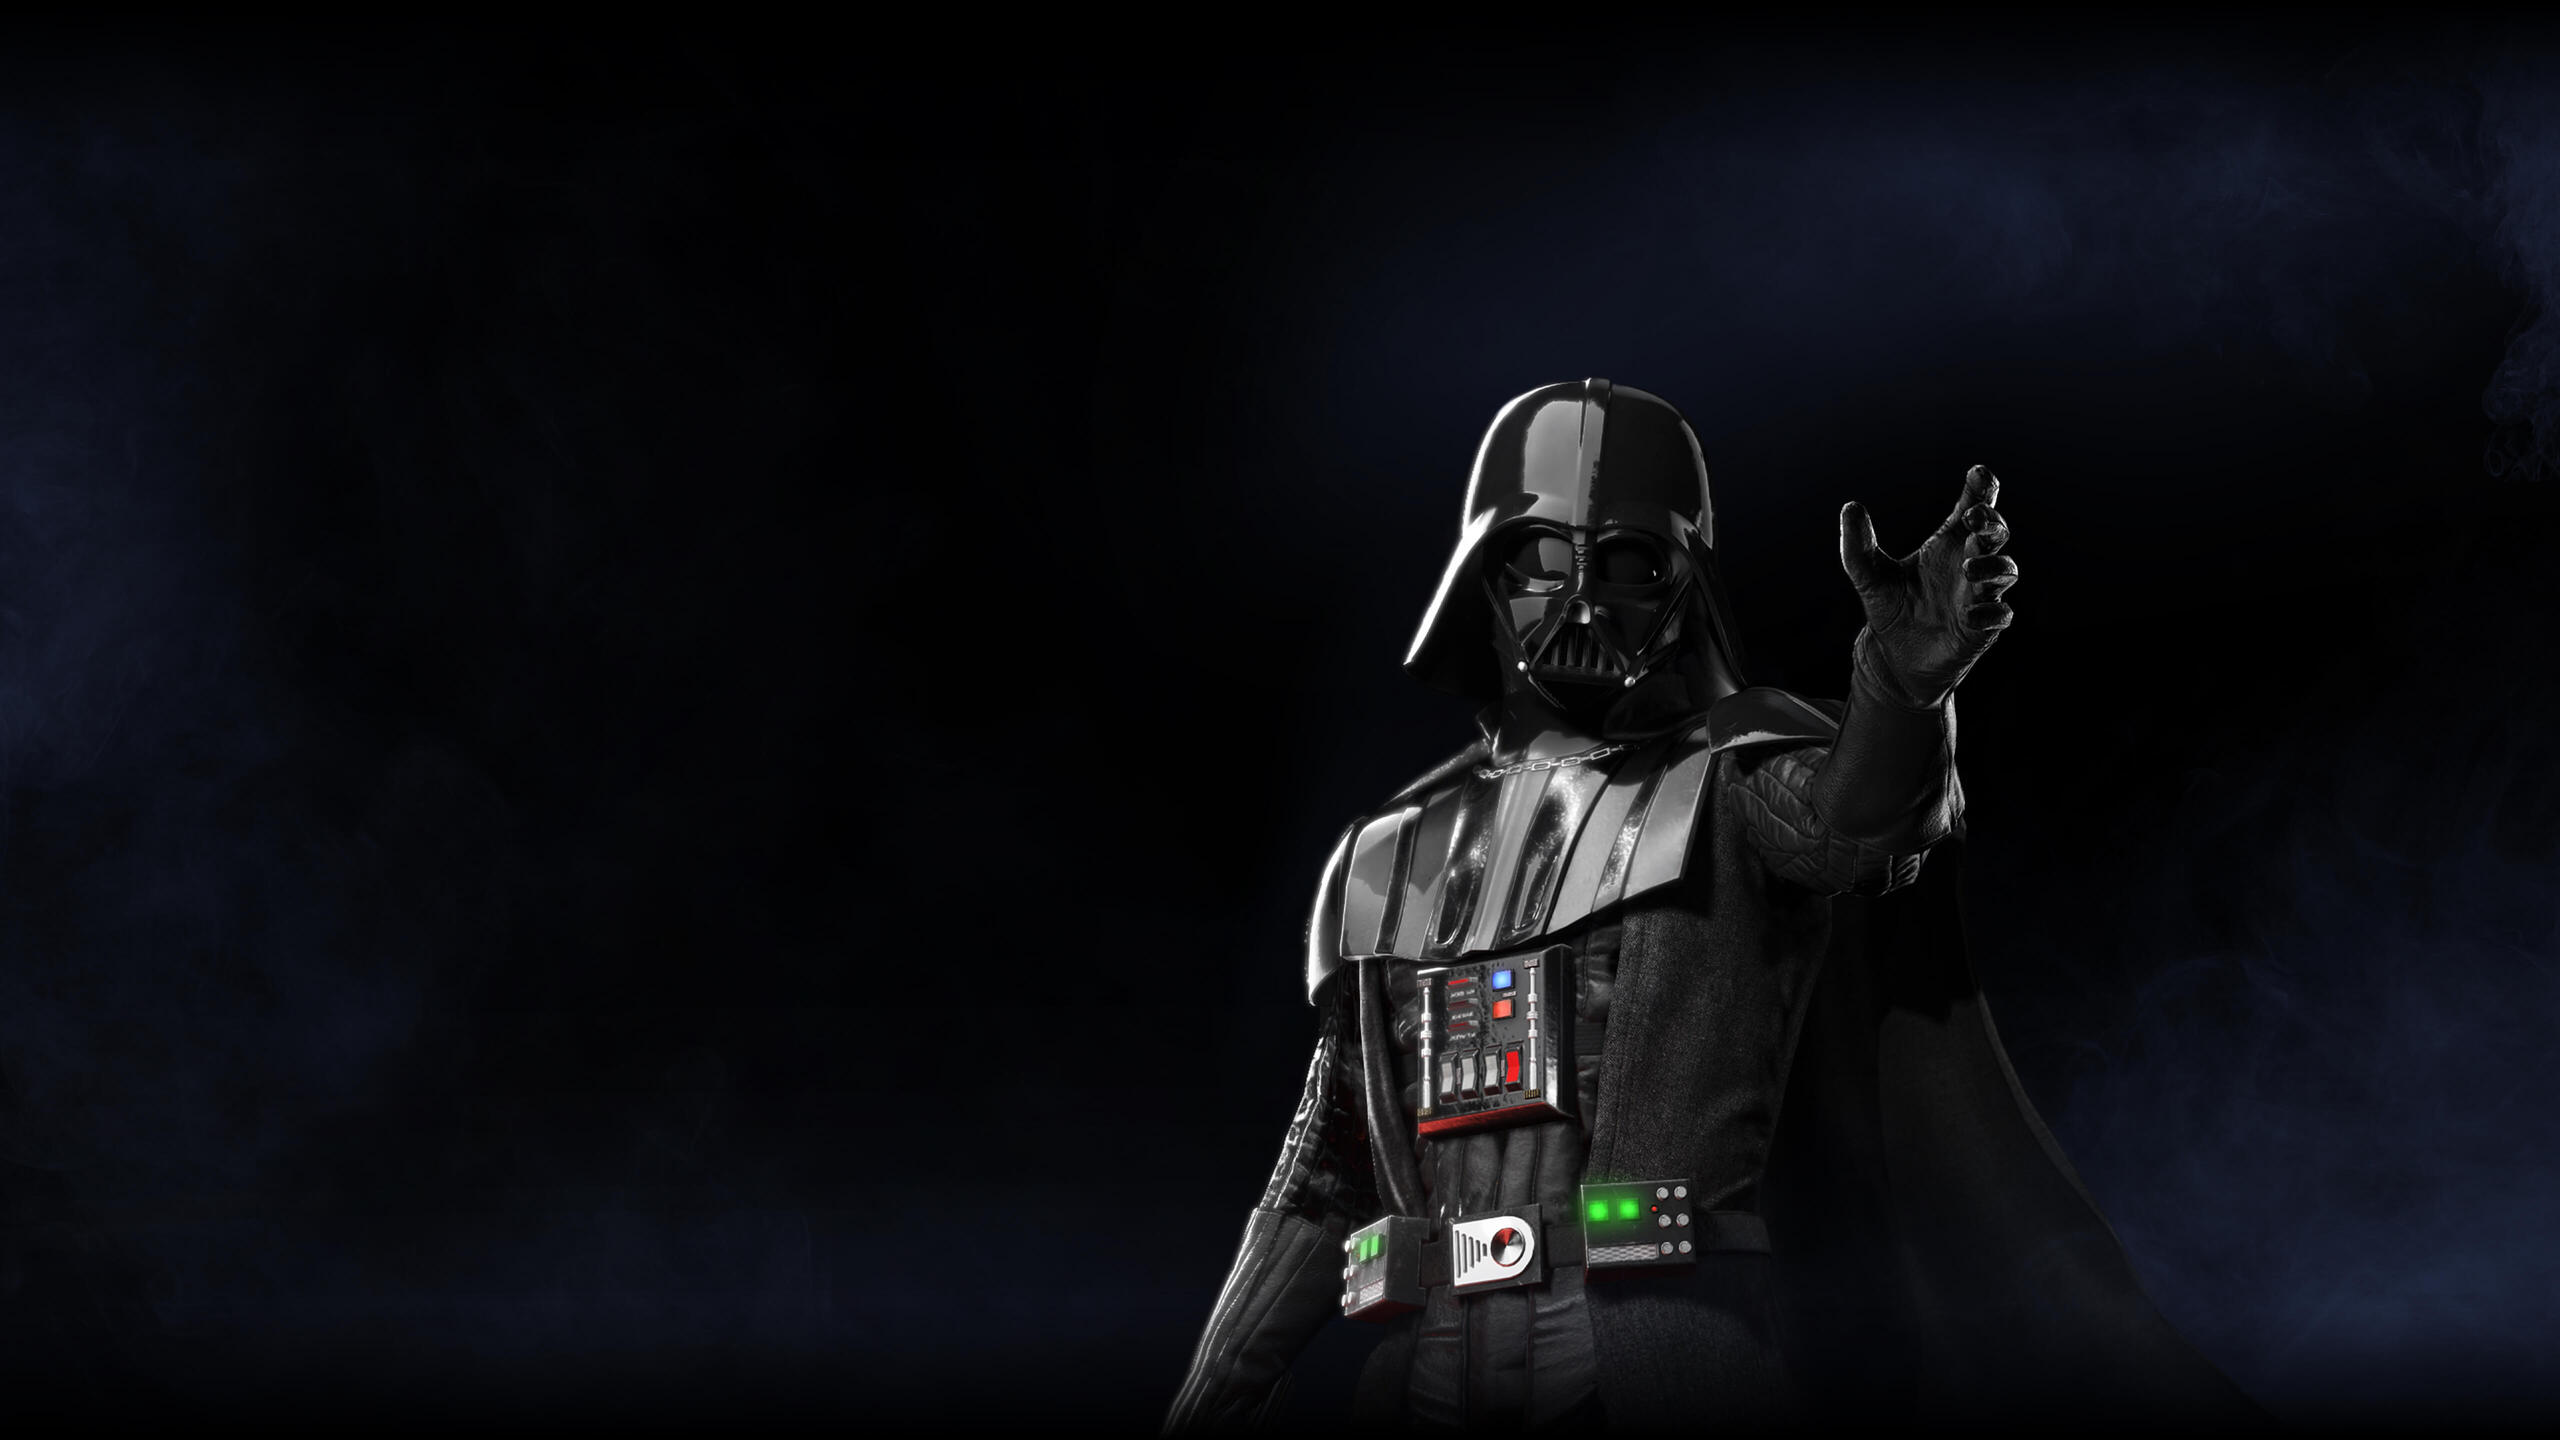 2560x1440 Darth Vader Star Wars Battlefront 2 1440p Resolution Hd 4k Wallpapers Images Backgrounds Photos And Pictures